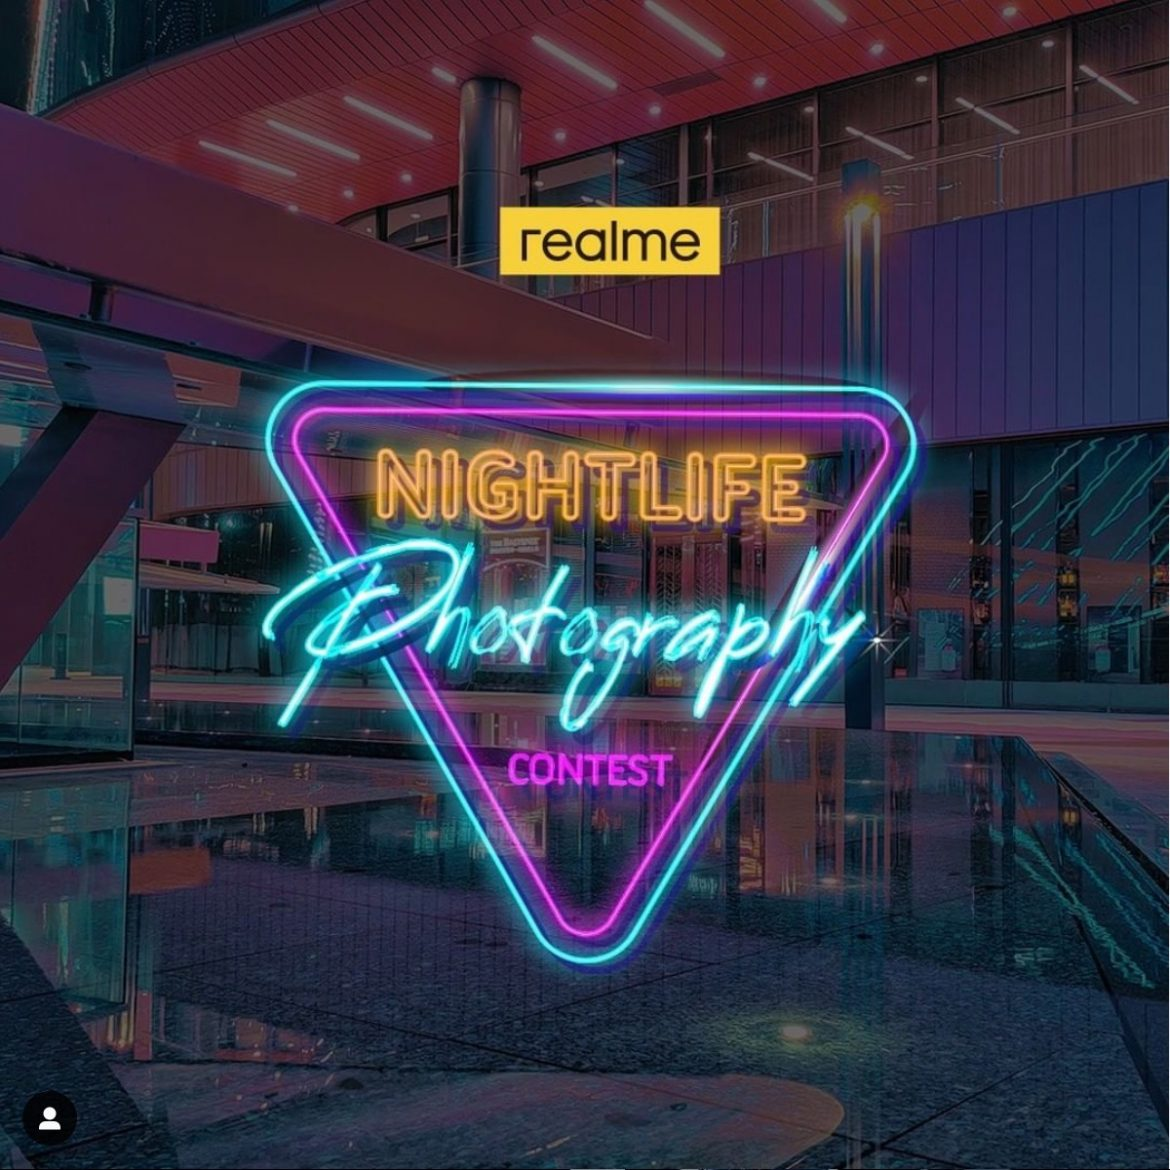 Join nightlife photography contest by realme to win realme 7 pro